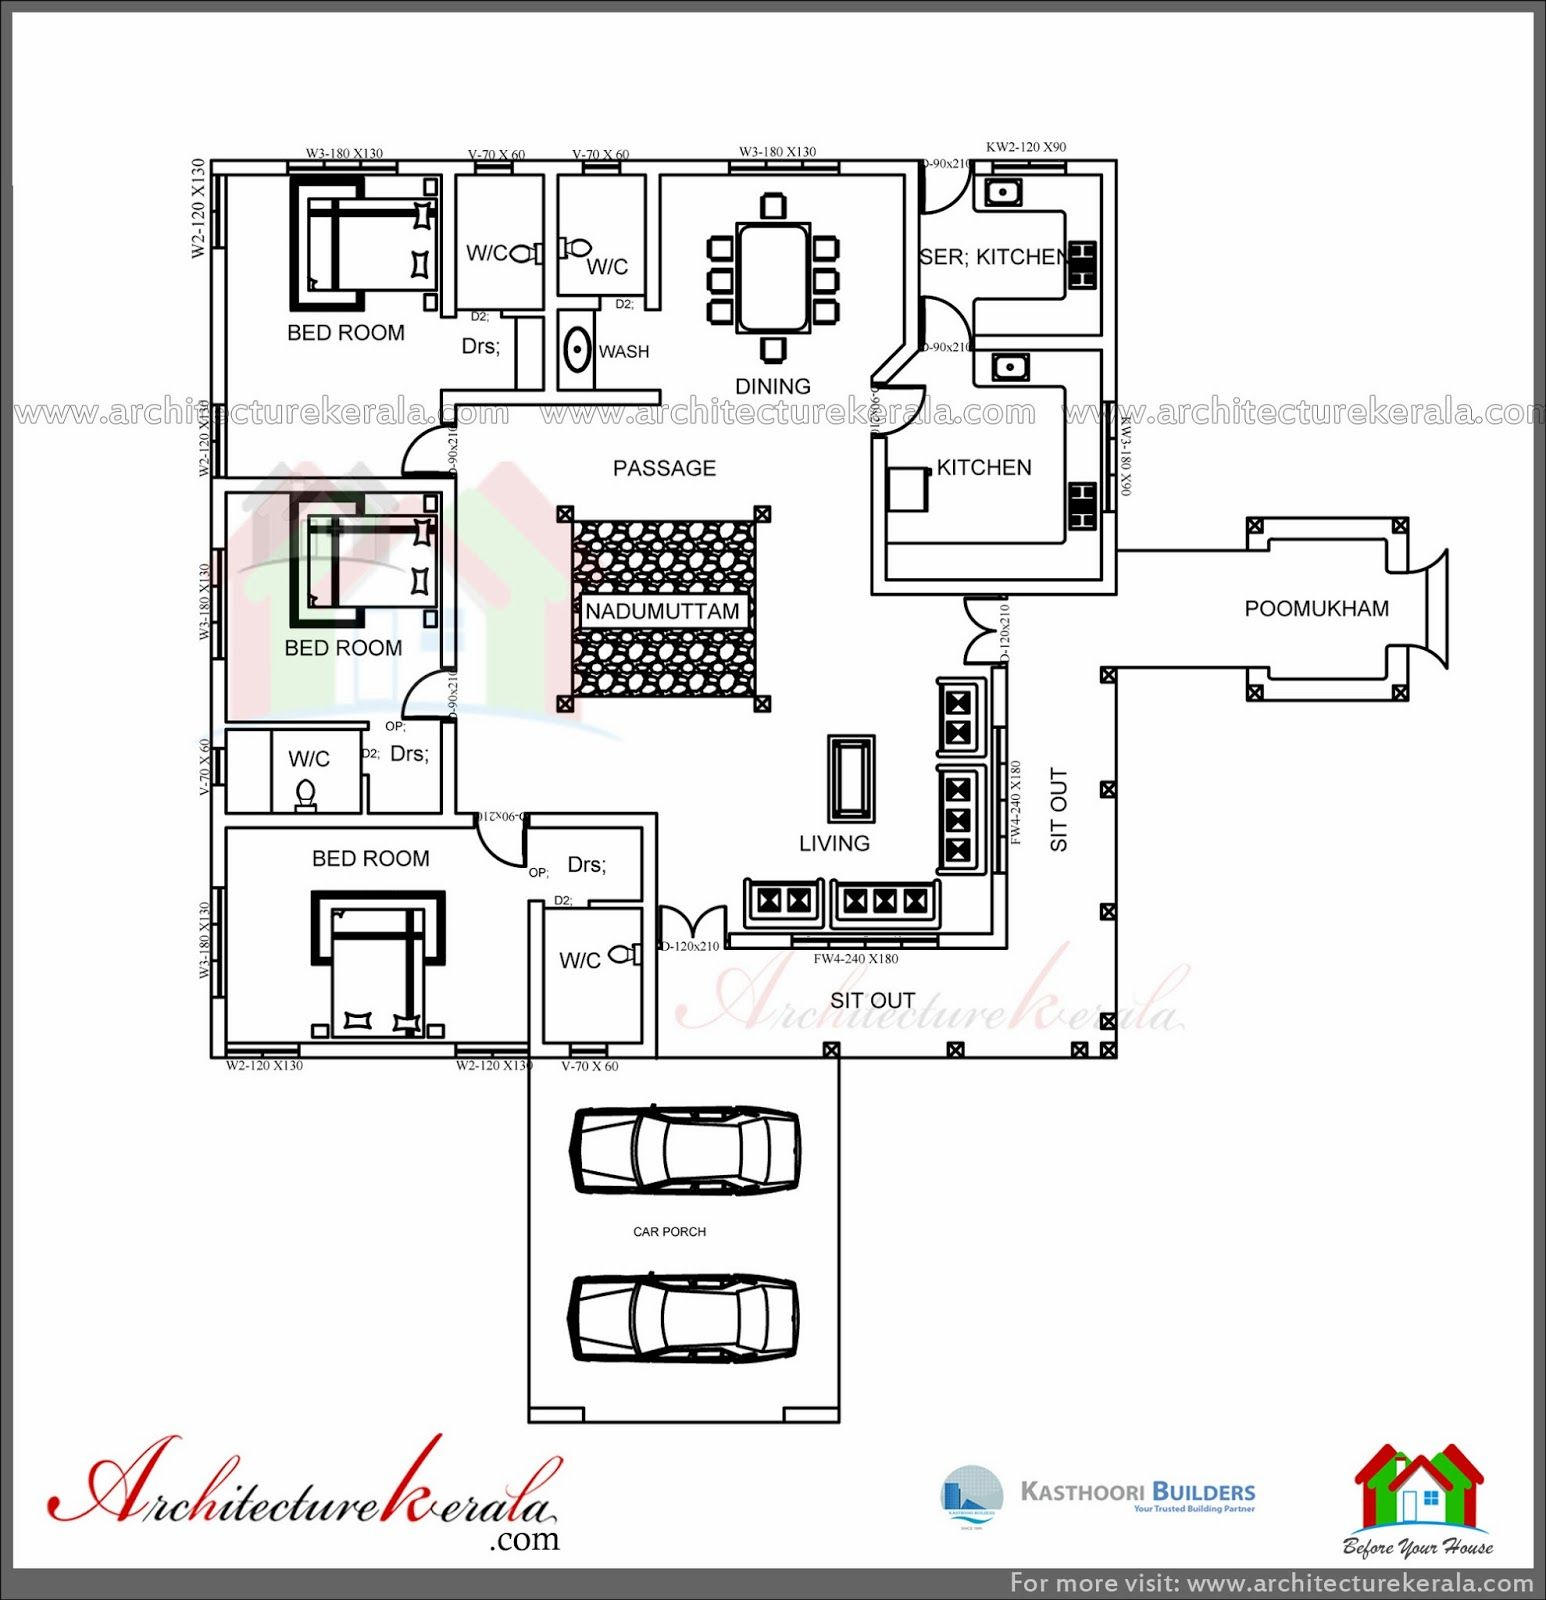 ARCHITECTURE KERALA TRADITIONAL HOUSE PLAN WITH NADUMUTTAM AND POOMUKHAM S